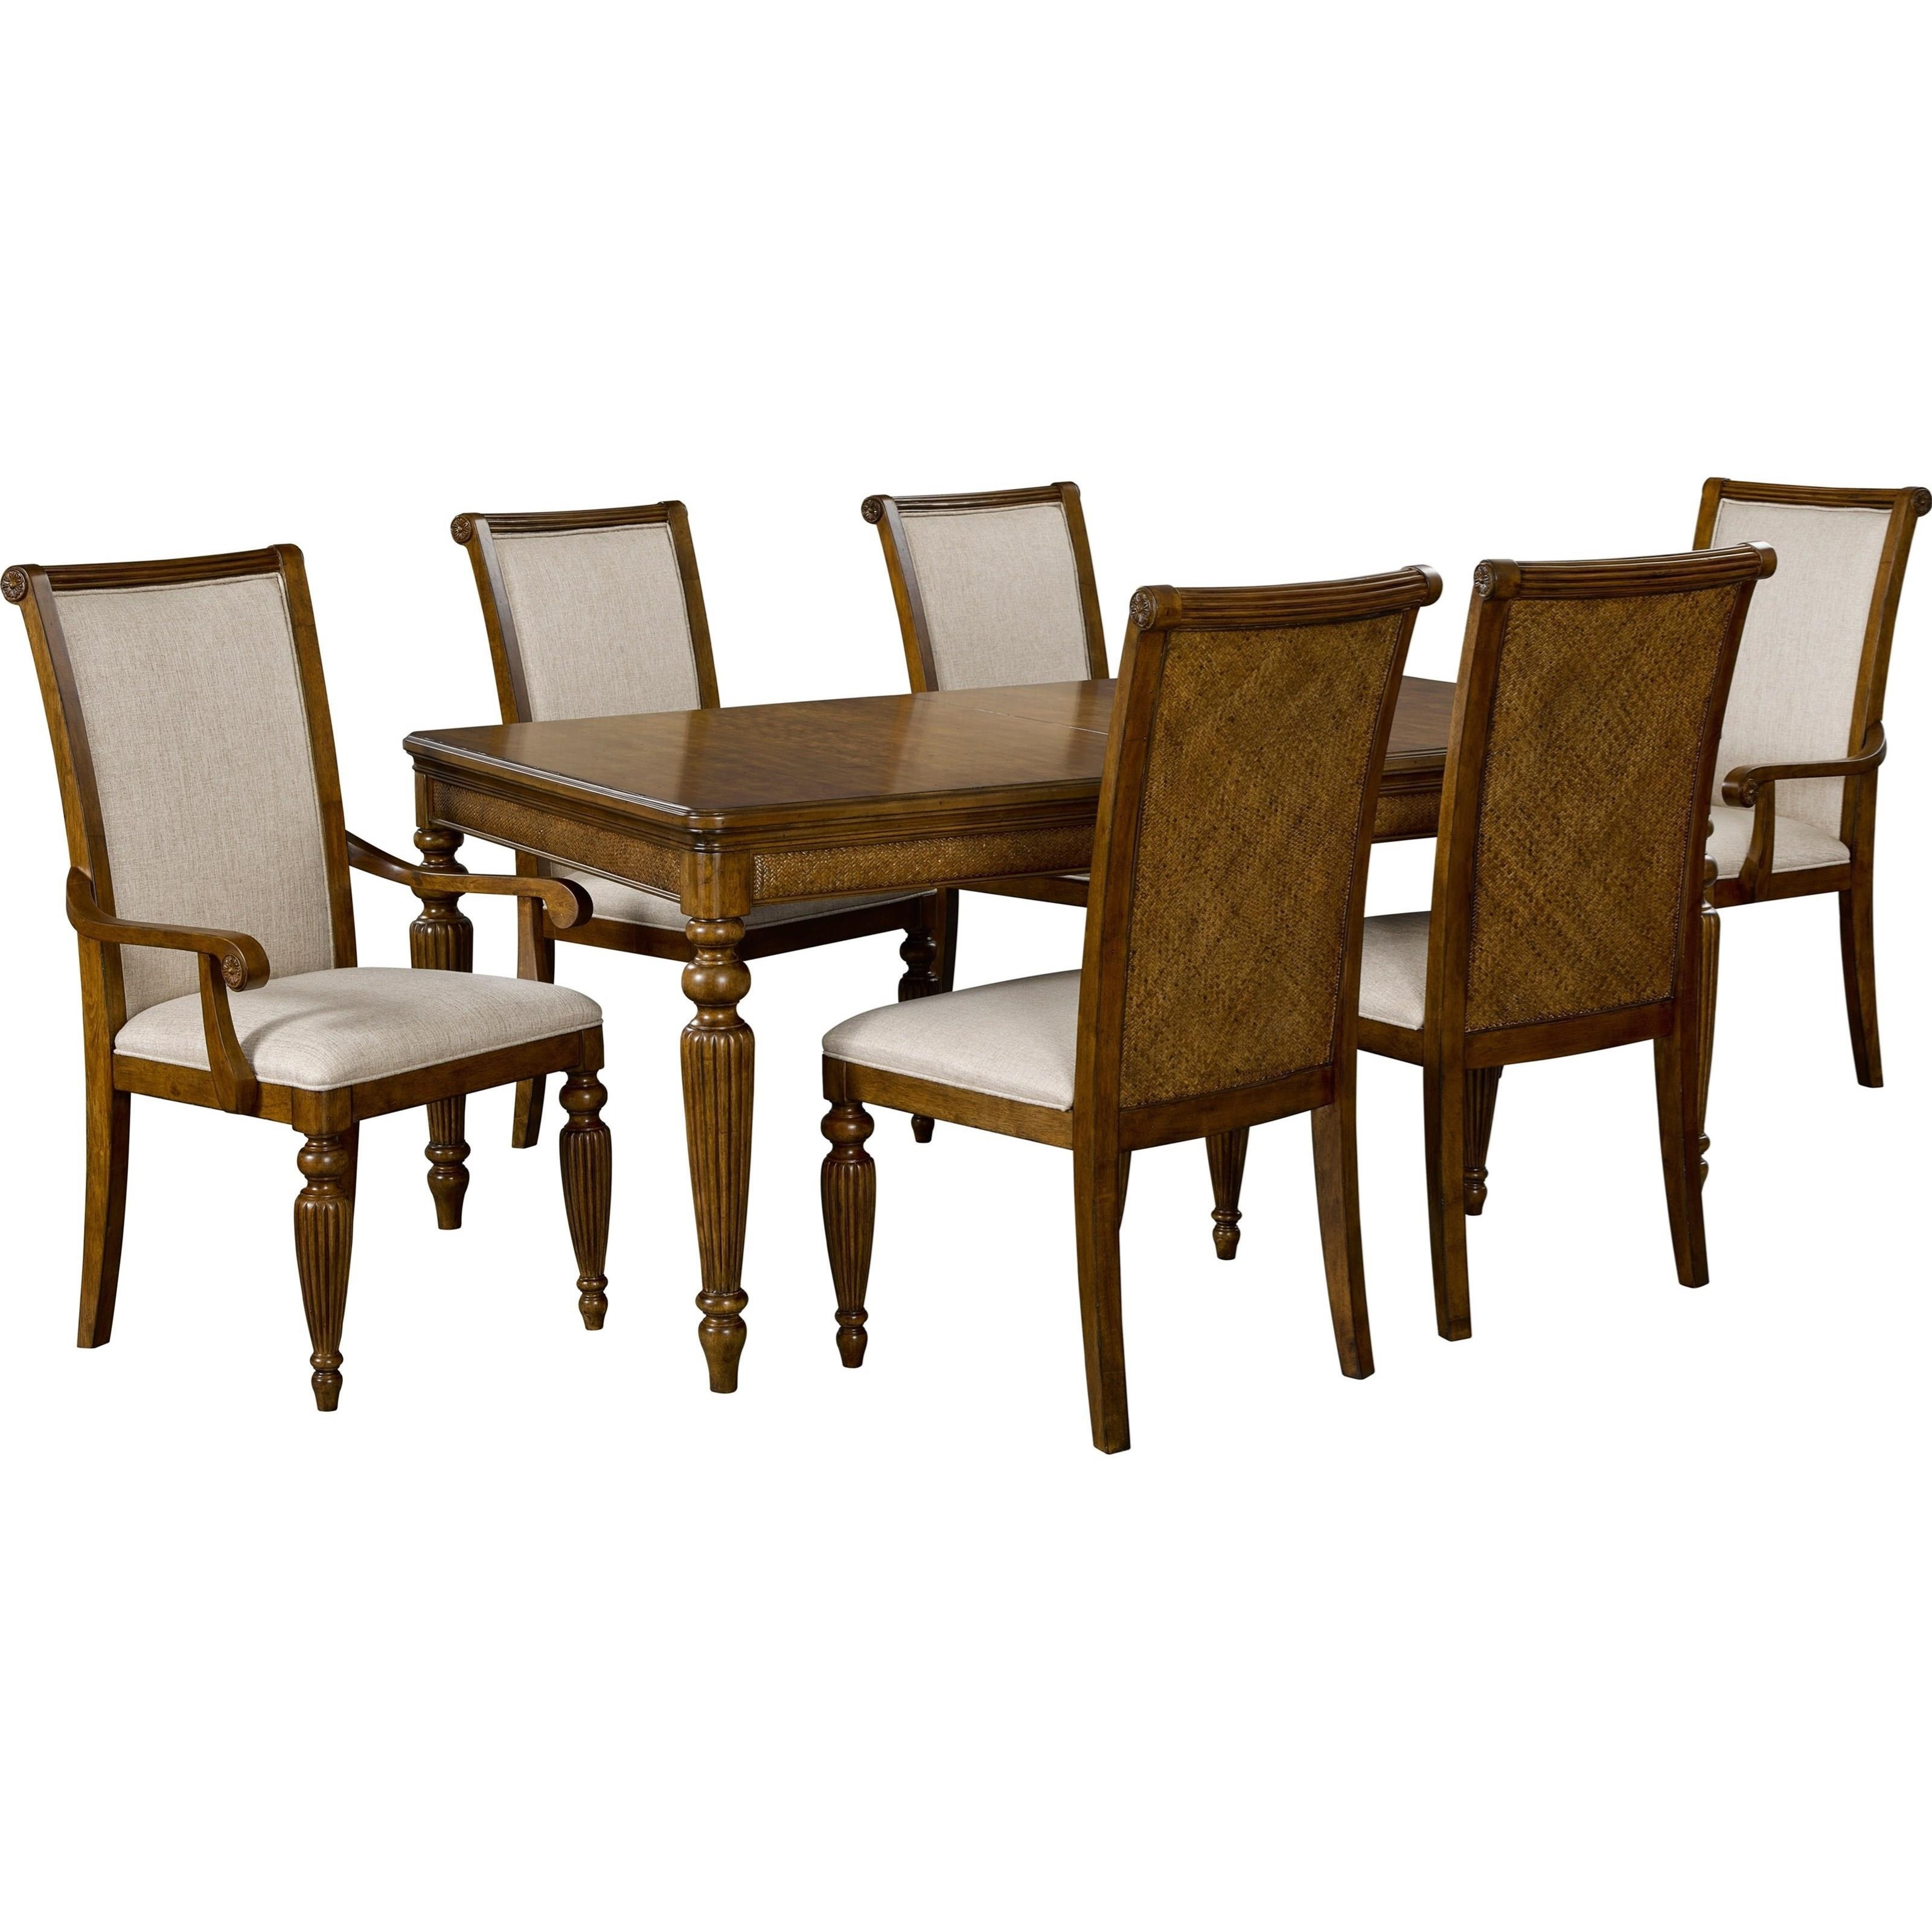 Broyhill Upholstered Dining Room Chairs